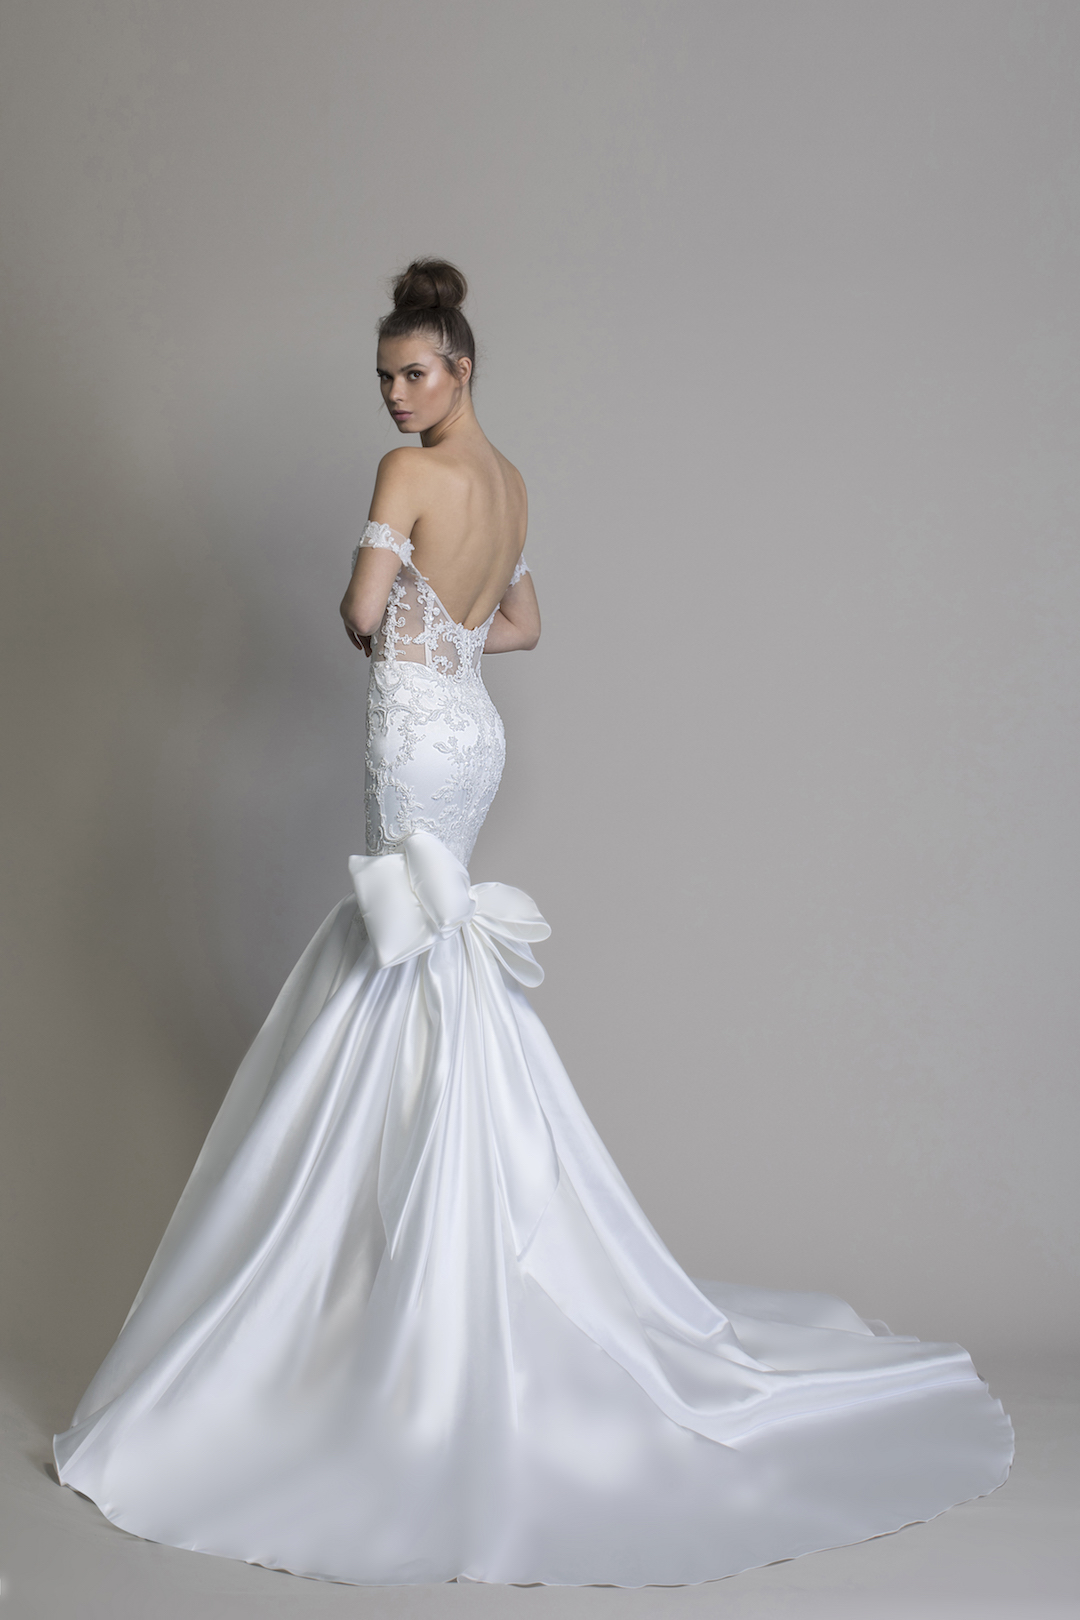 Pnina Tornai's new LOVE 2020 Collection is out! This is style 14779